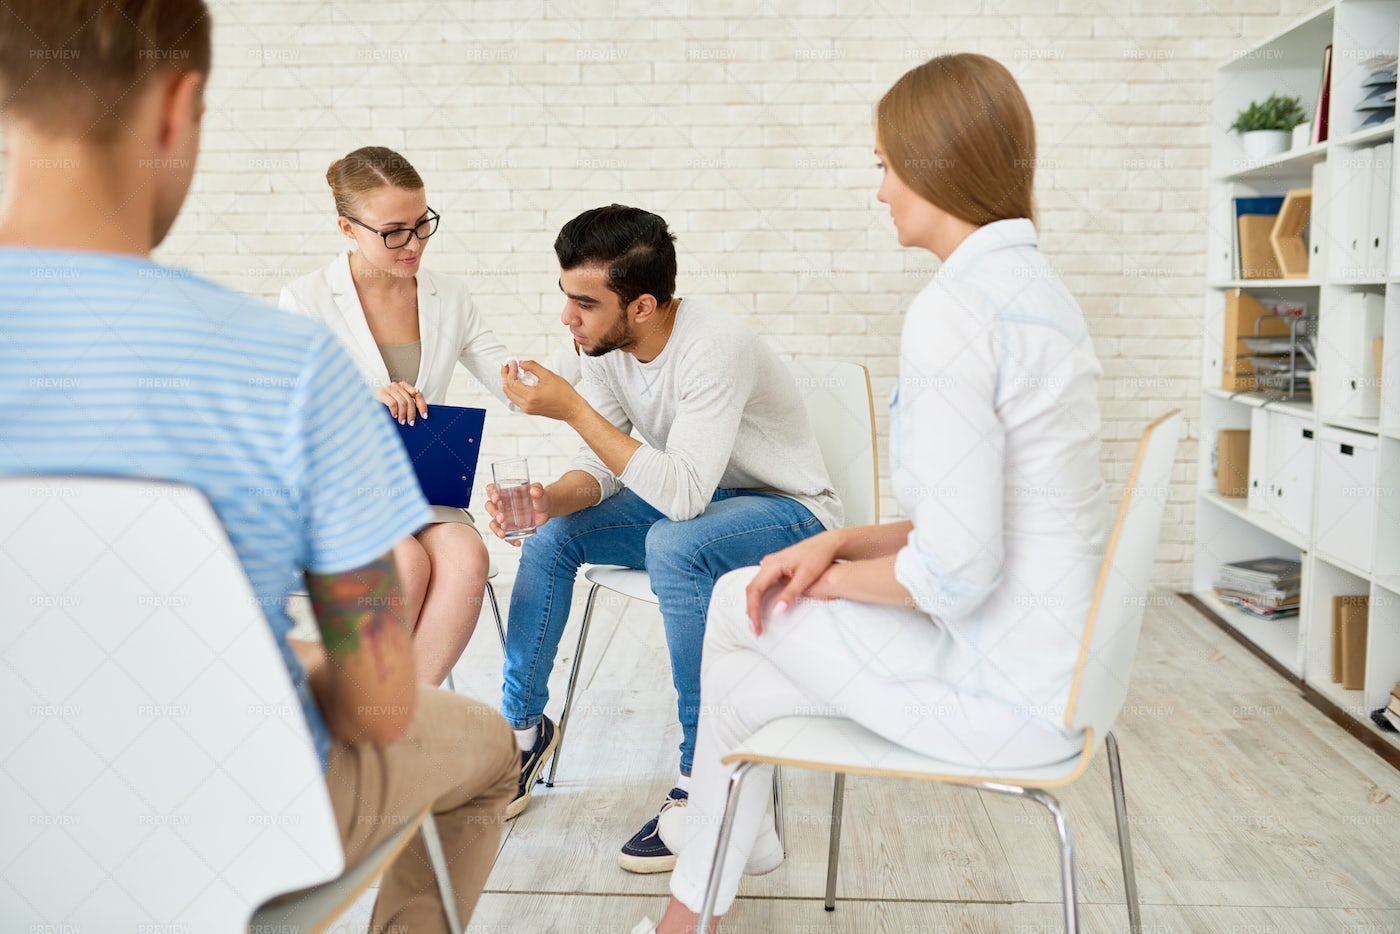 Young Man In Group Therapy Session: Stock Photos